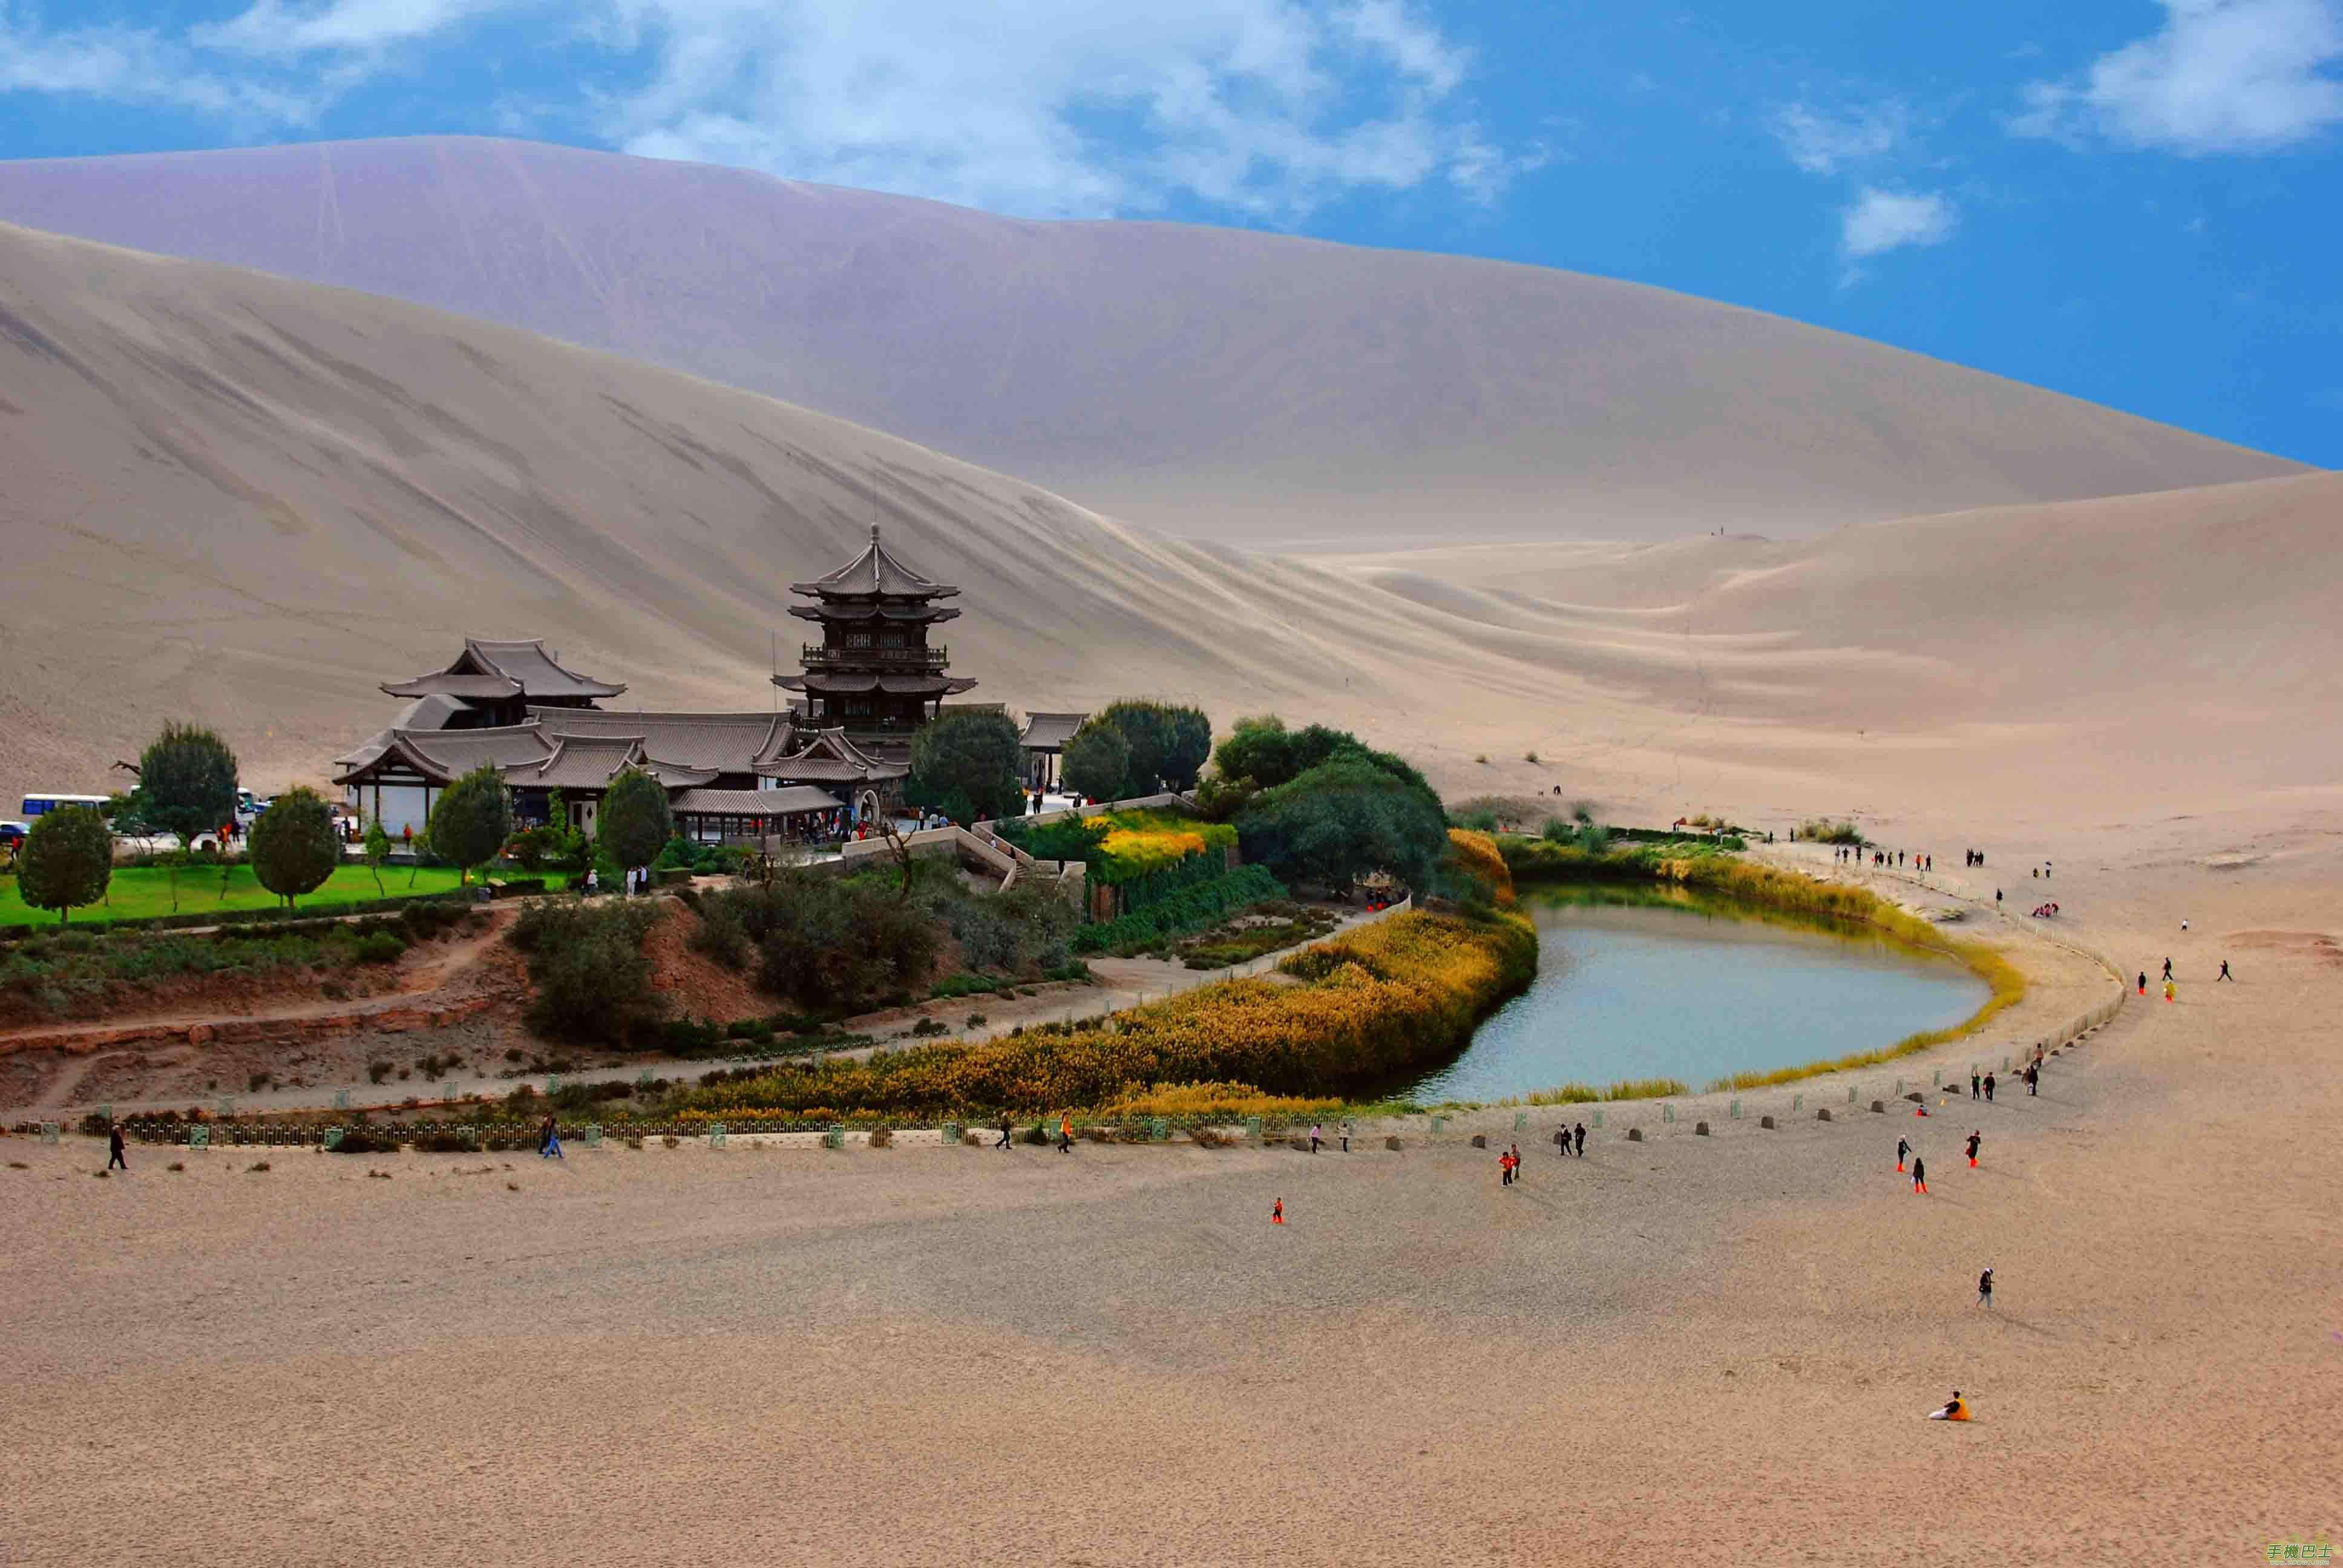 photo of dunhuang moon lade mogao cave - China travel